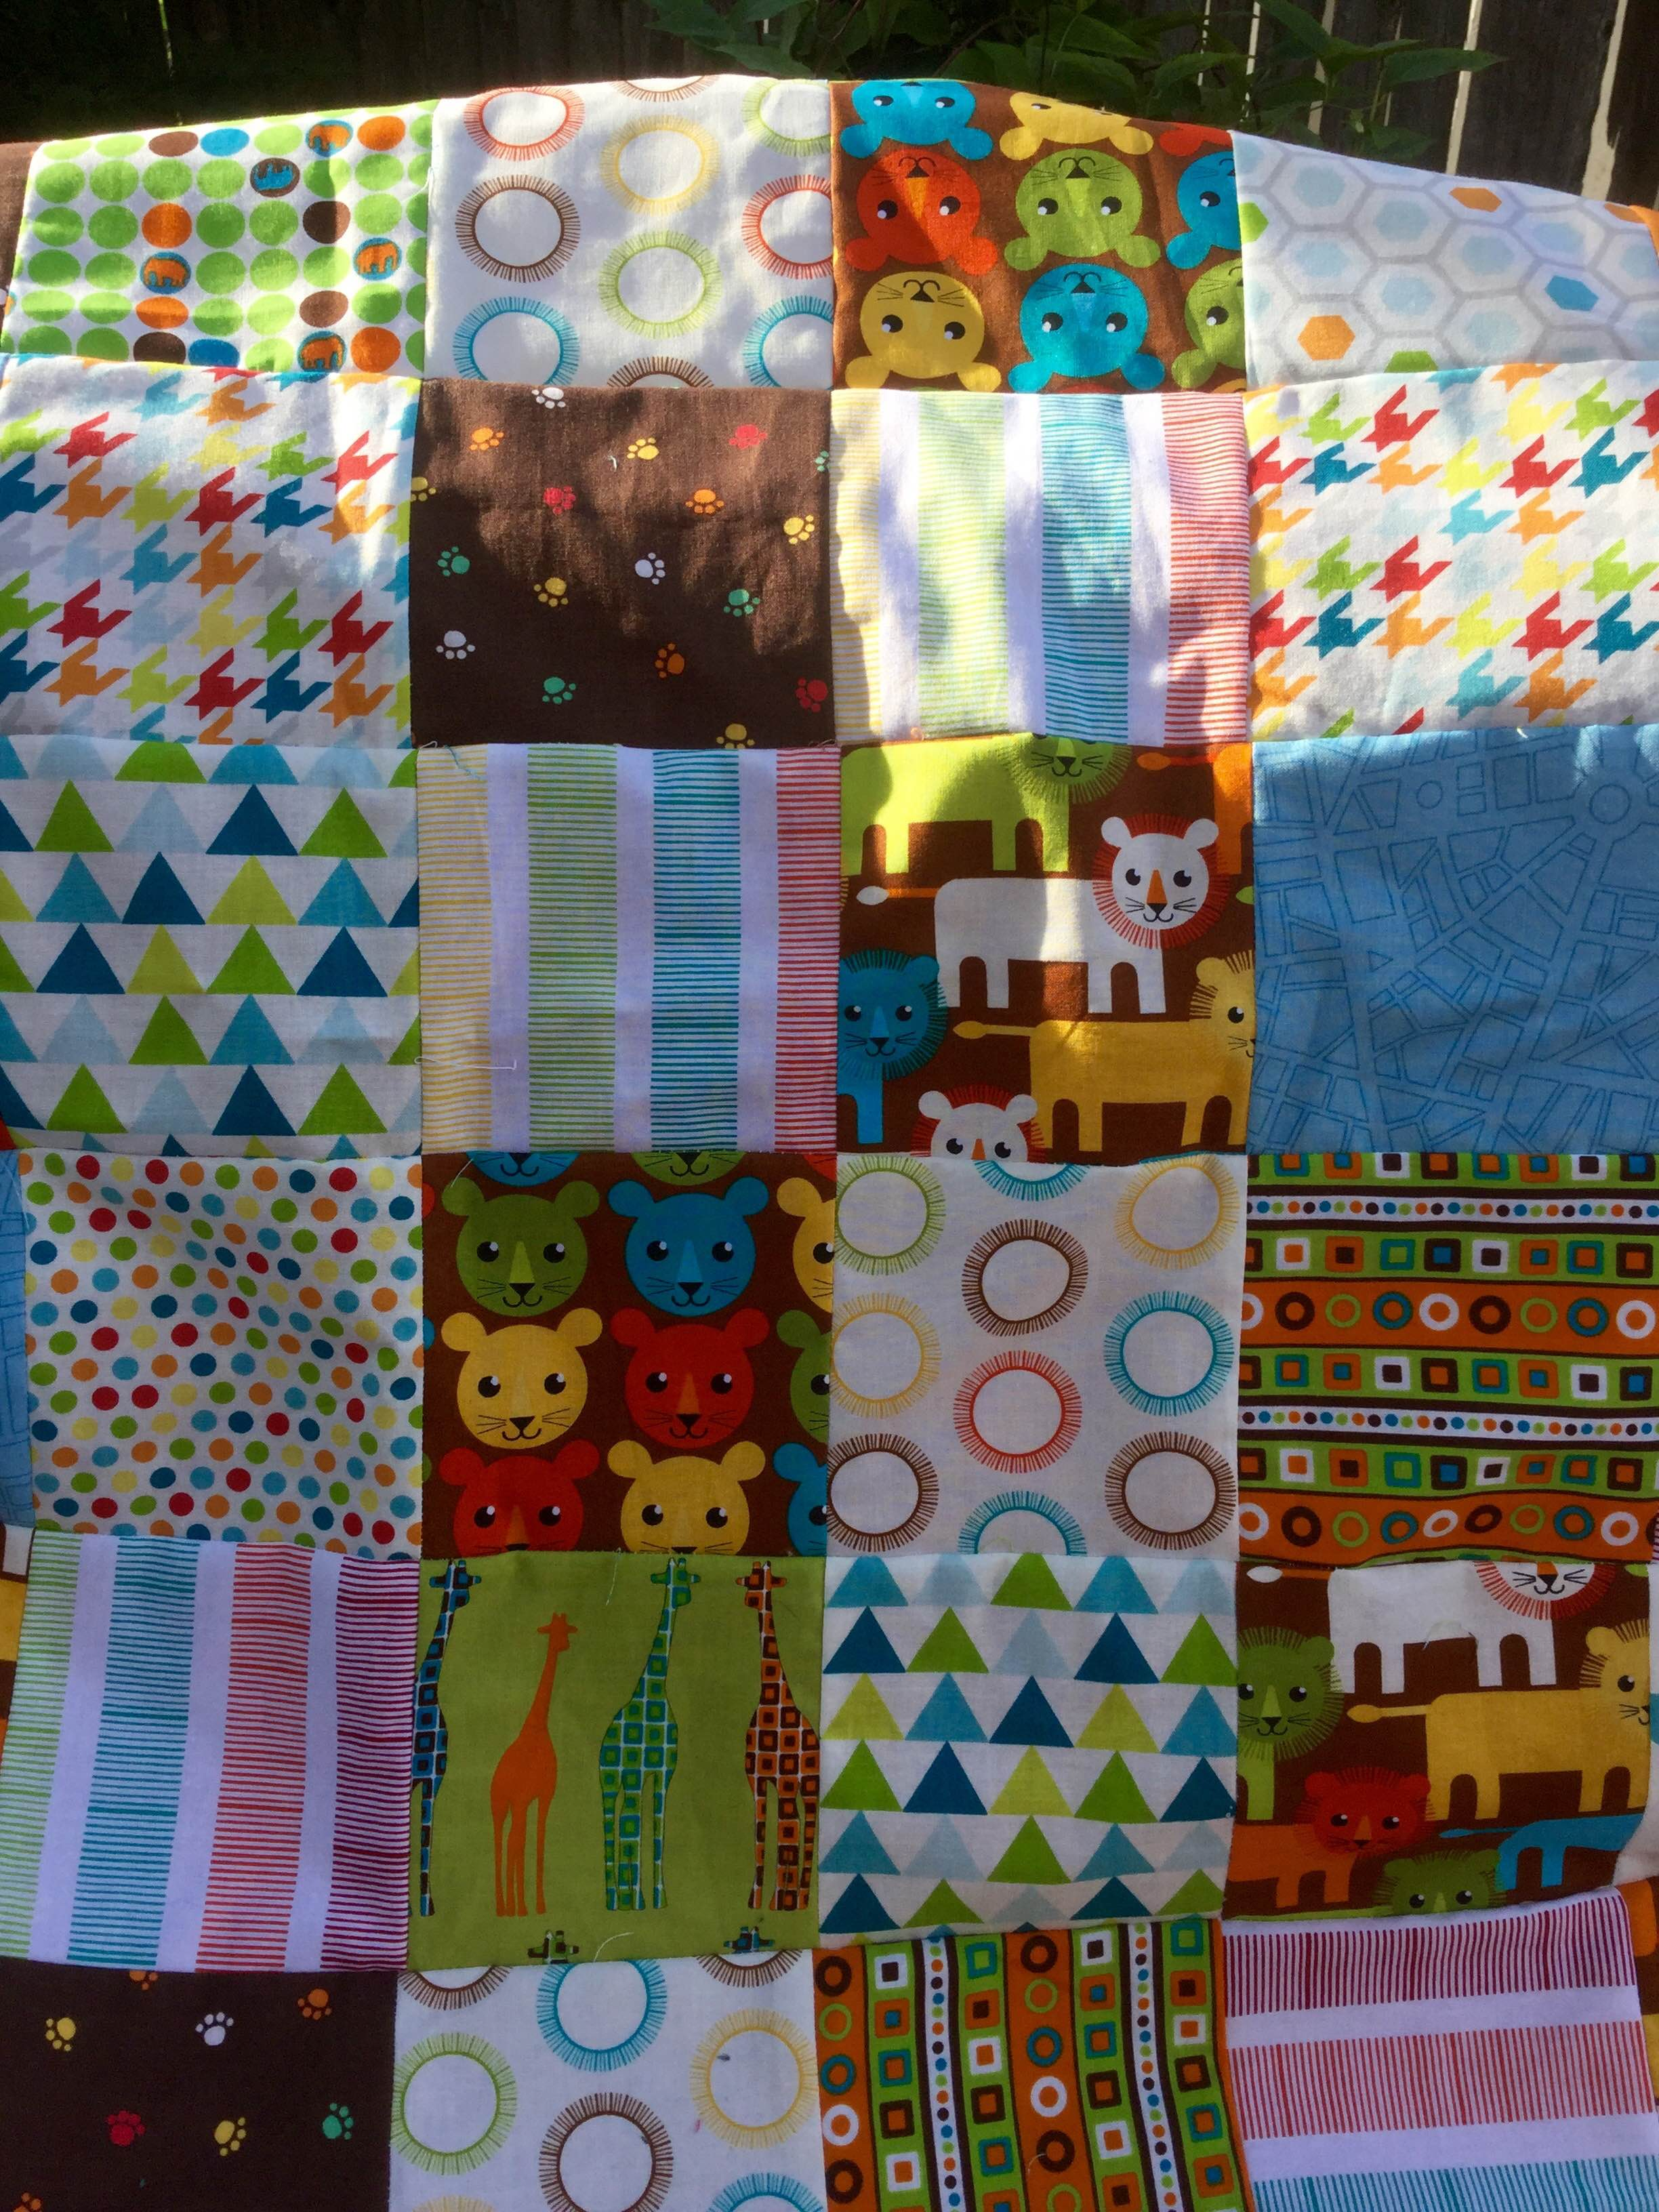 Below is a picture of the original quilt.